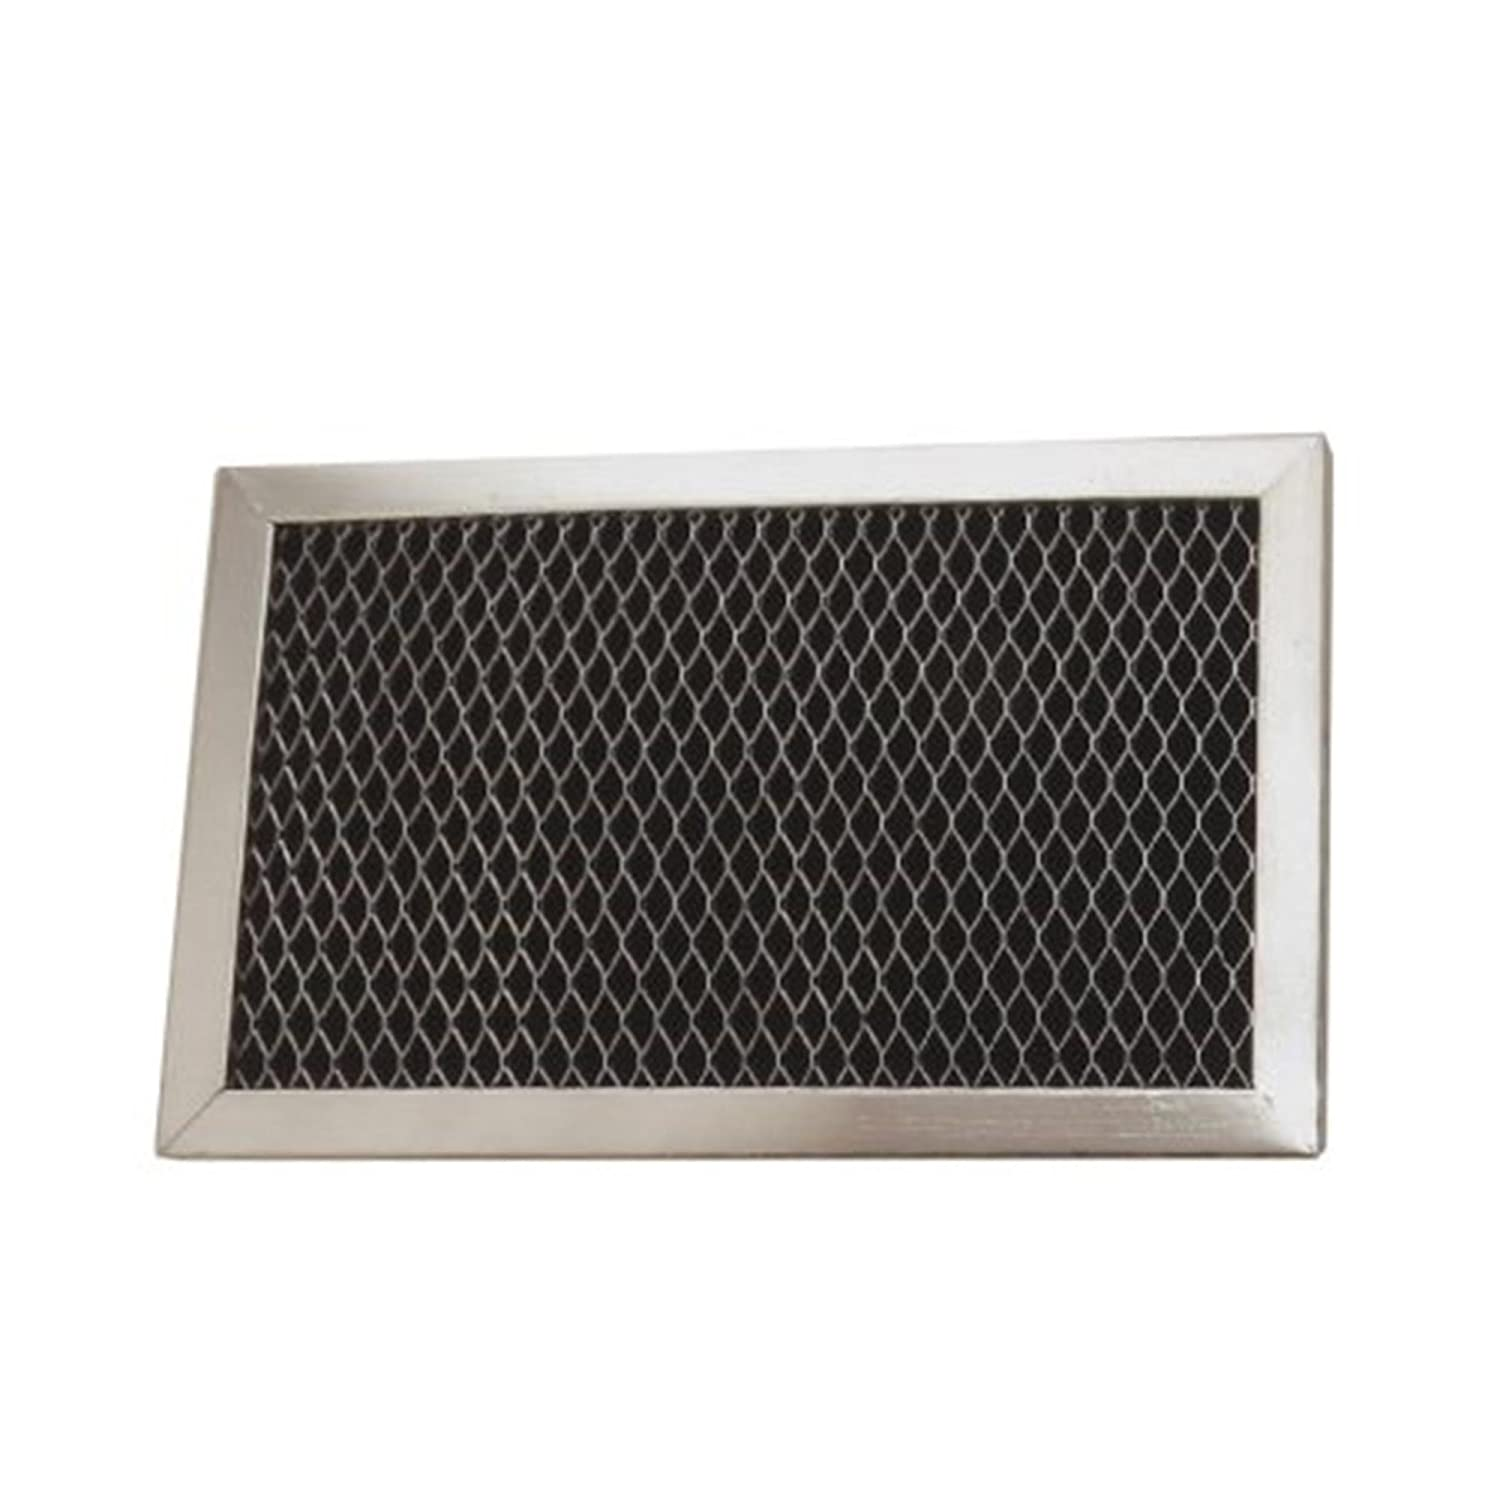 LG Electronics 5230W1A011B Microwave Oven Charcoal Filter Geneva - LG parts - APA